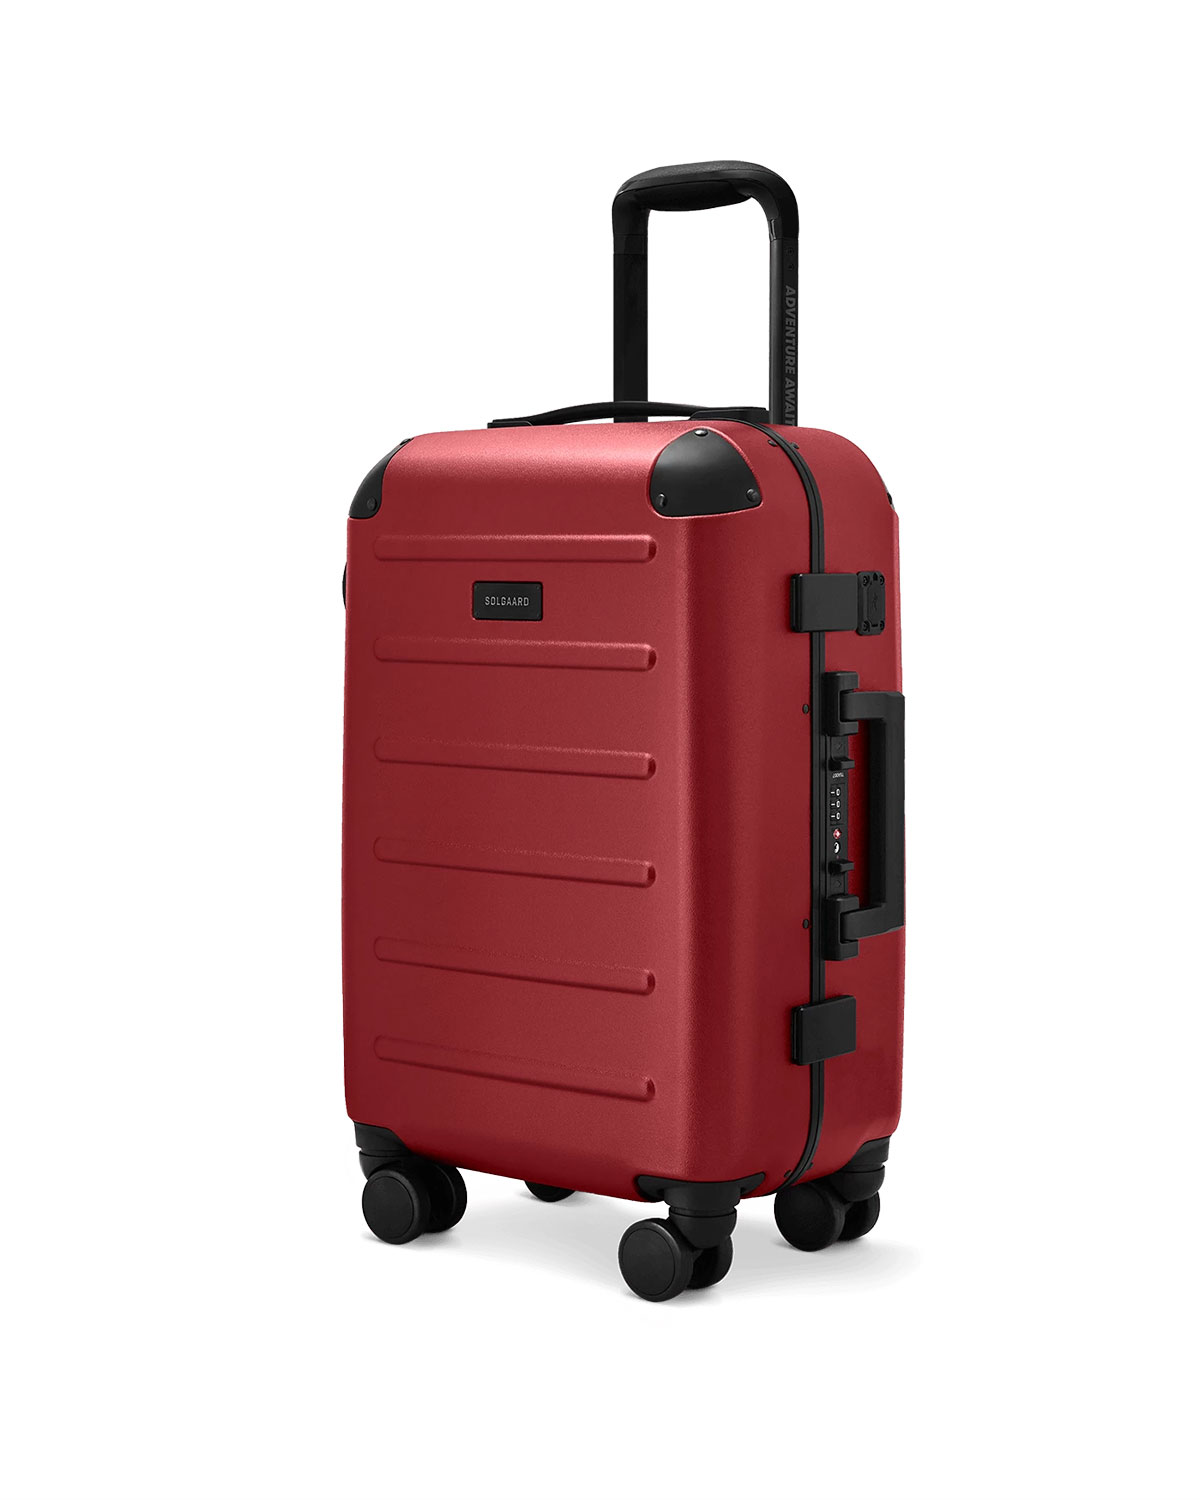 The Carry-On Closet 2.0 - Red